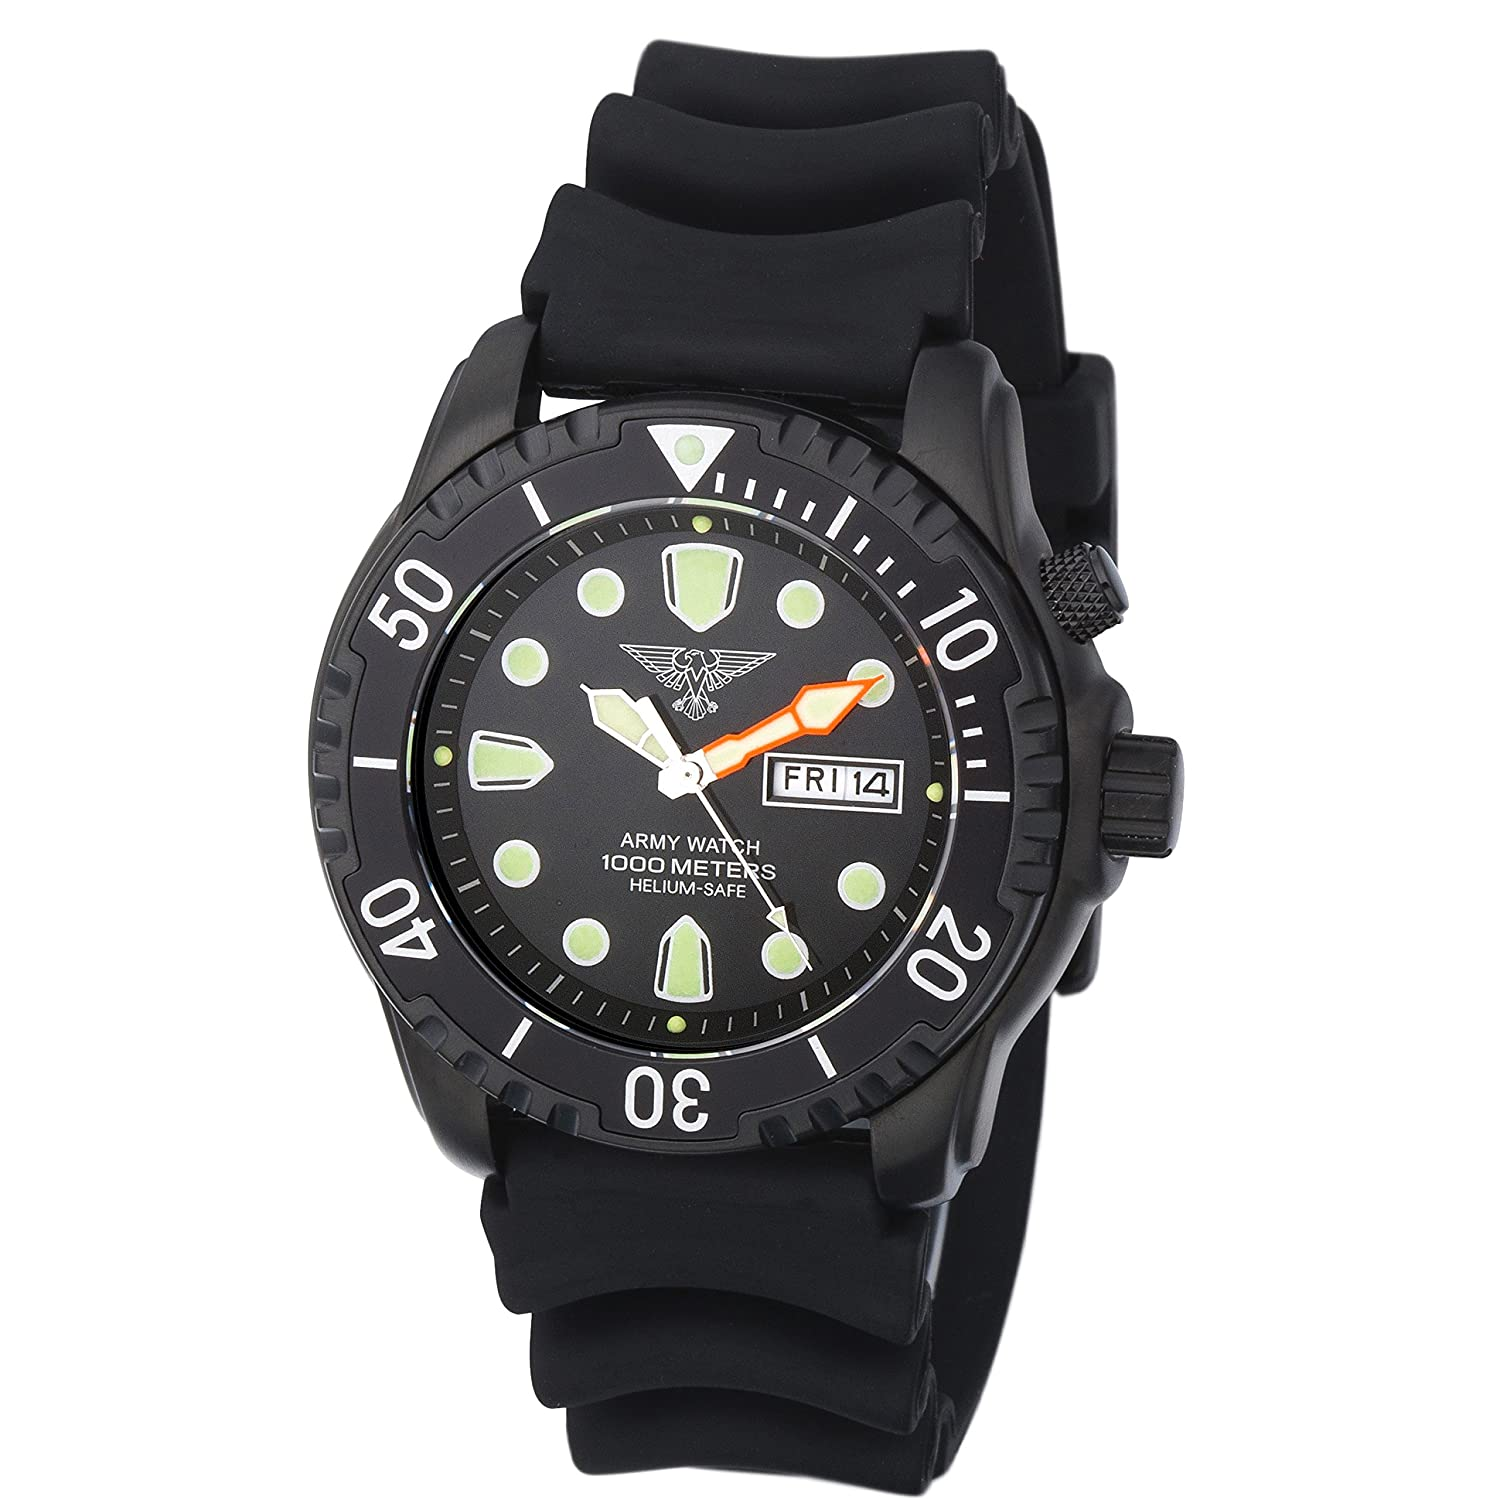 Army Watch Taucheruhr - 100 ATM-1000 Meter - Silikonband - Black IP - EP848